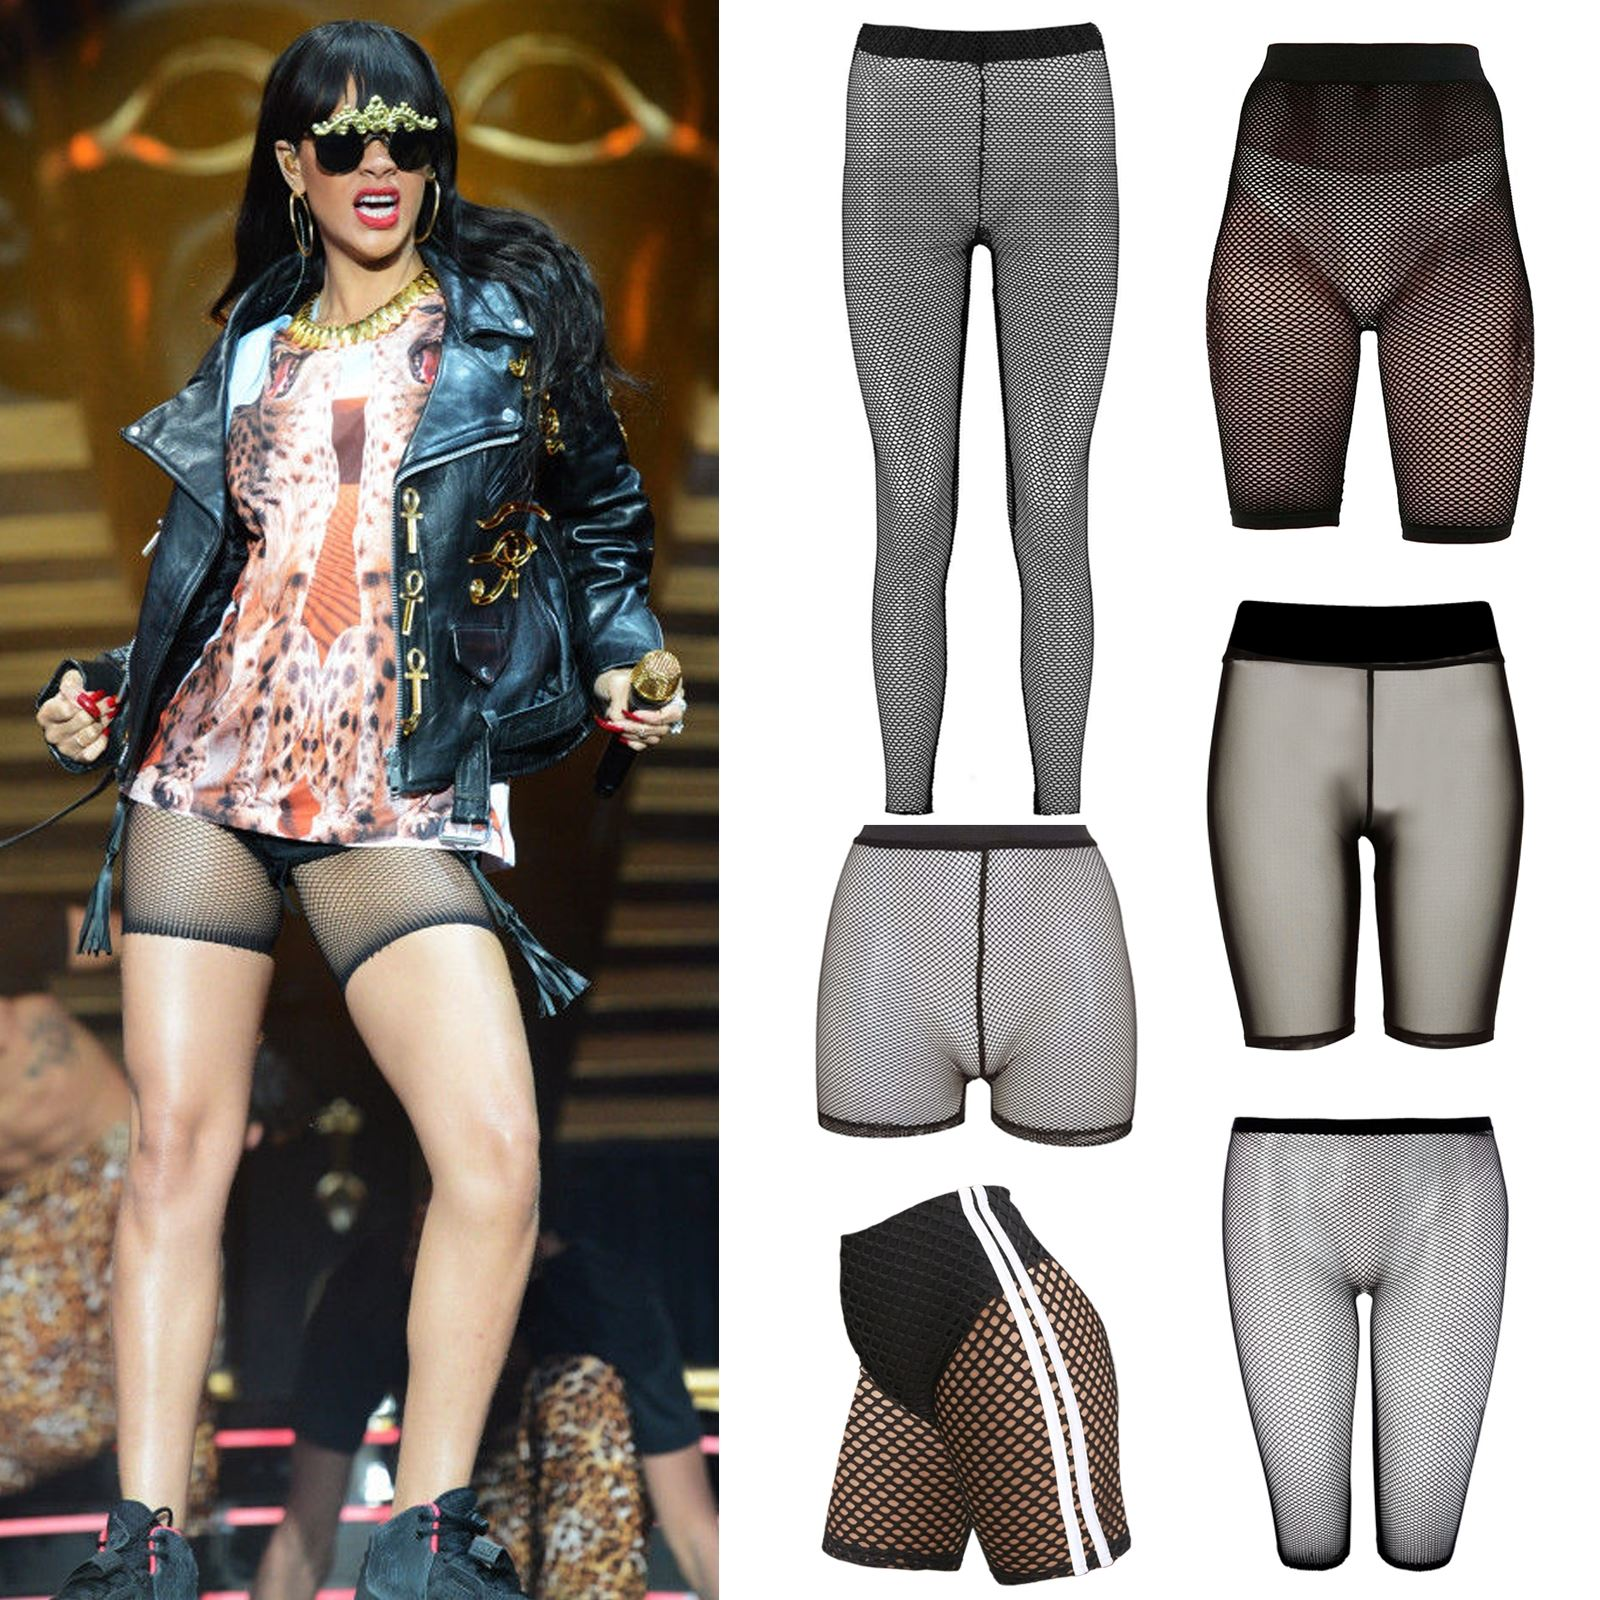 46a81b845d4 Details about New Womens Fishnet Mesh See Through Slim Fit 3 4 Leggings Cycling  Short Hot Pant